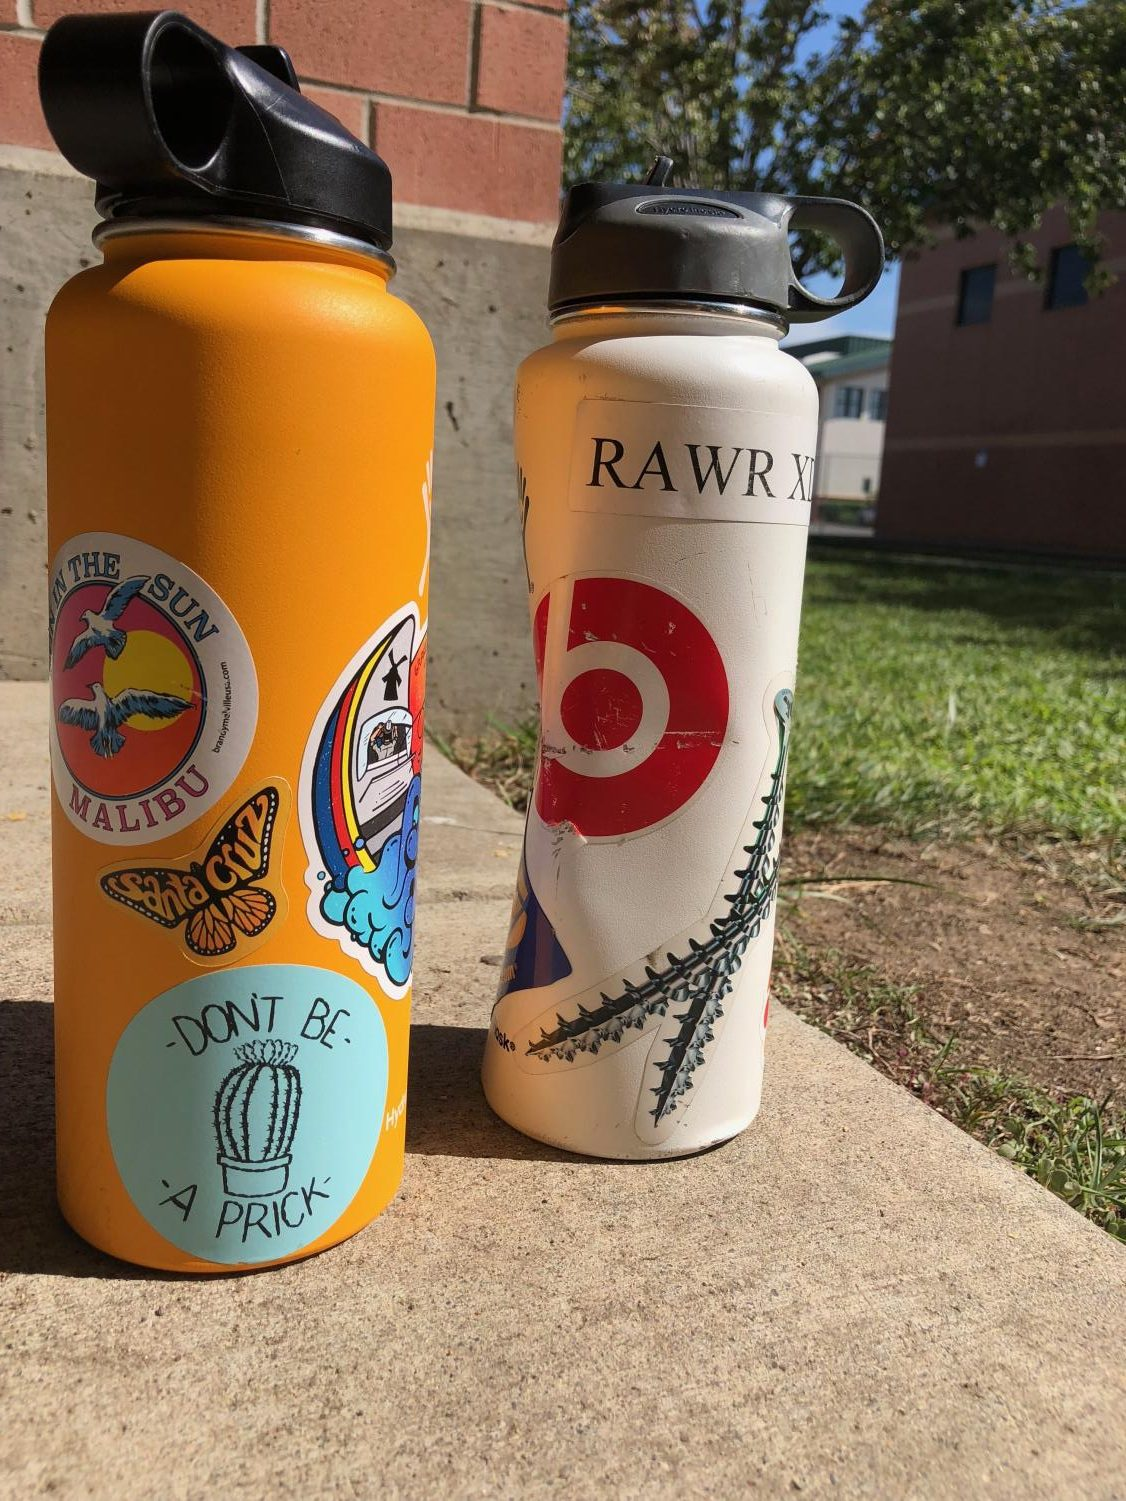 Student Hydroflask stickers have raised the eyebrows of concerned GBHS administrators.